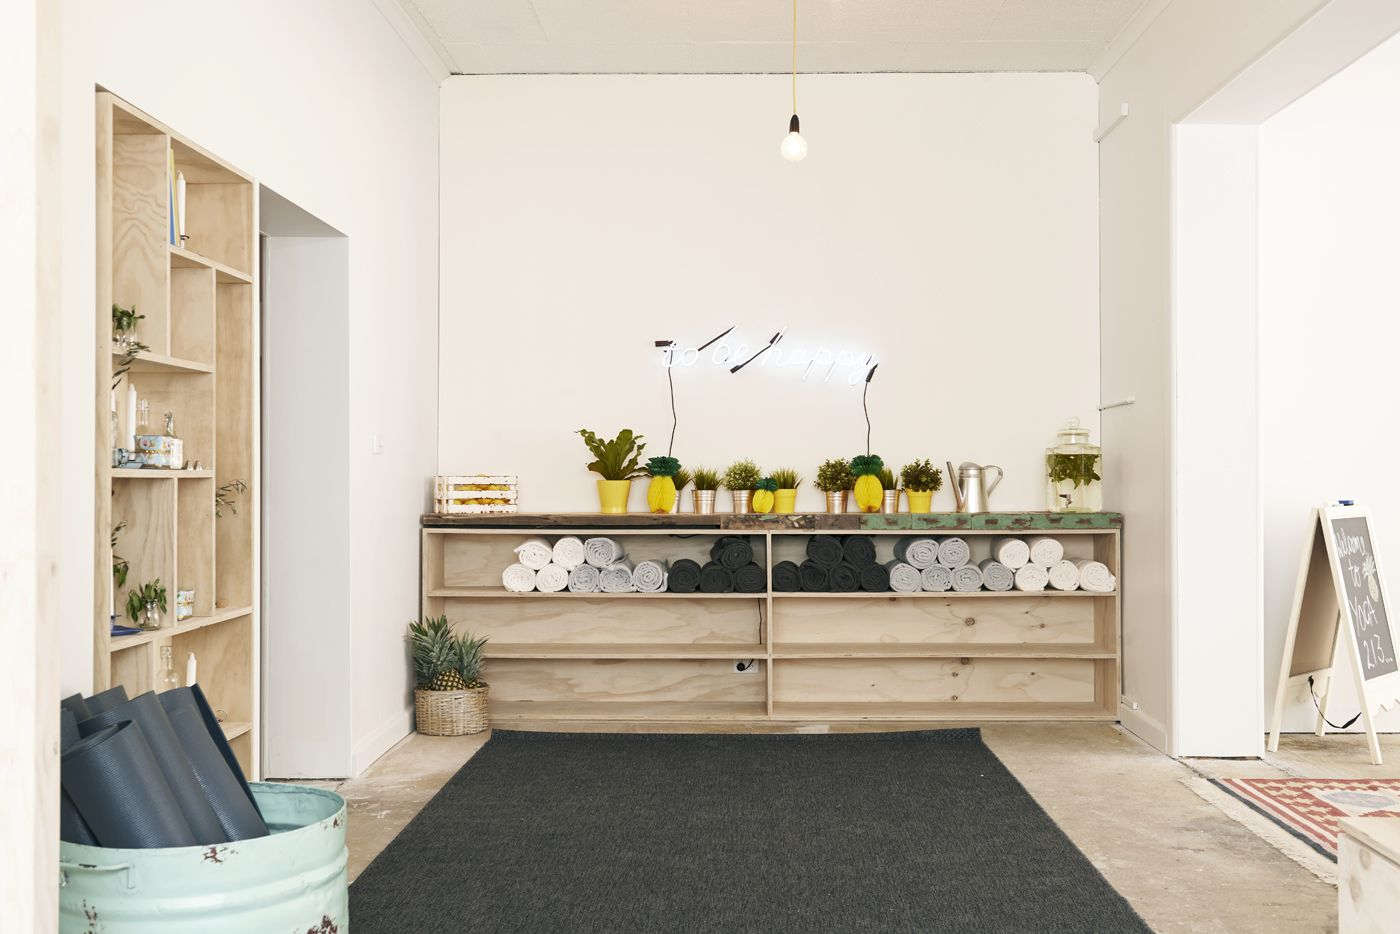 Melbourne yoga studio inspired by california and  member of men at work yes you read right also best organization images on pinterest rooms rh